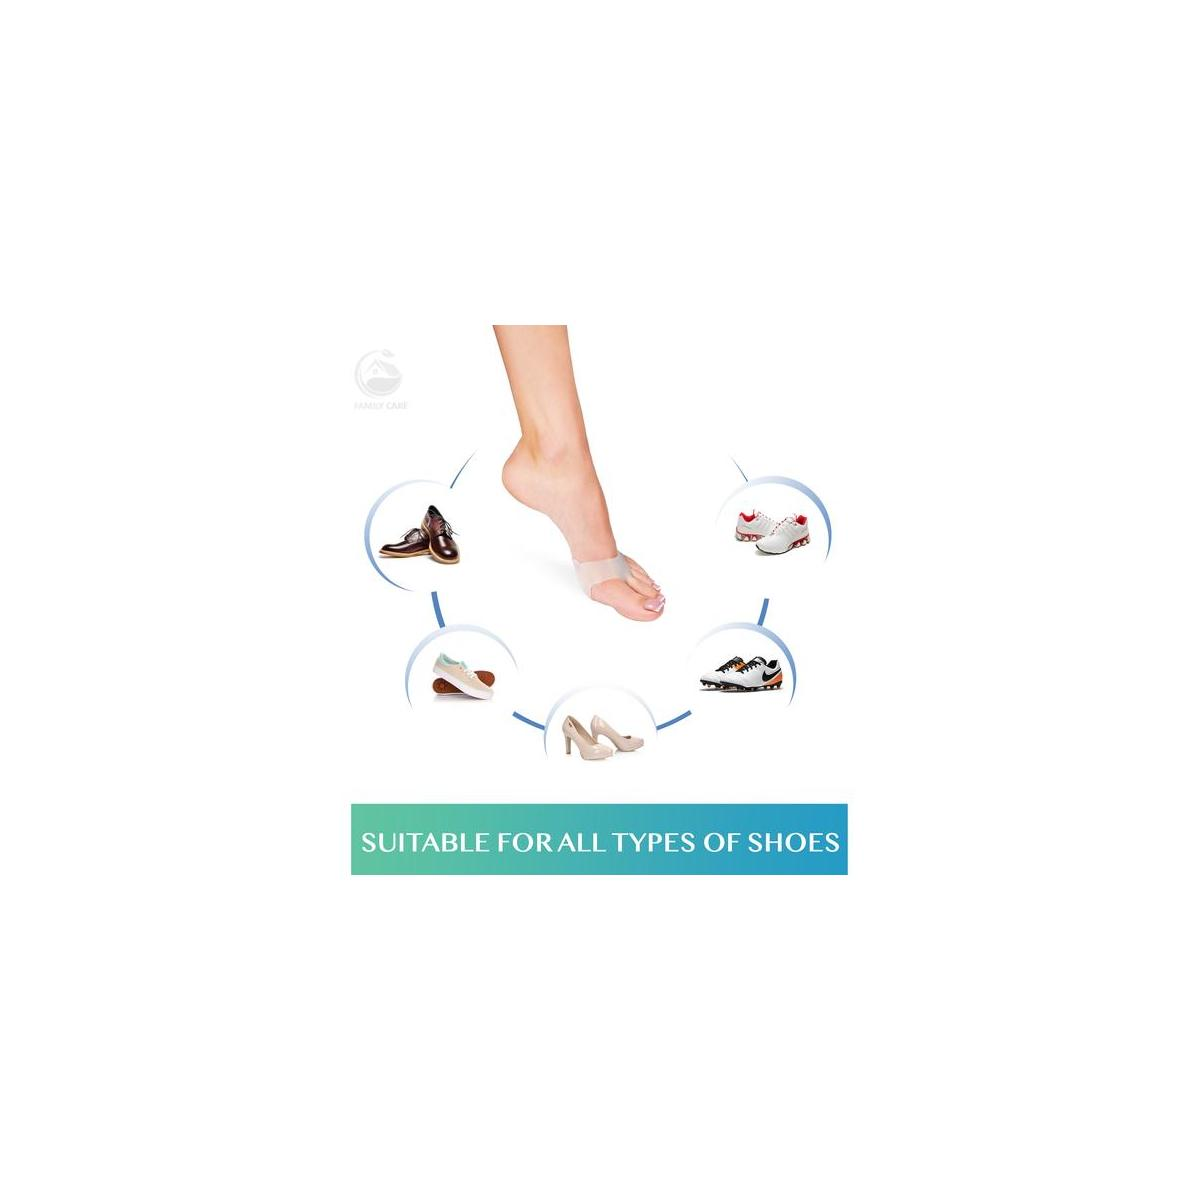 Metatarsal Support Pads Ball of Foot Cushion – Soft Cushioning Comfort for Feet